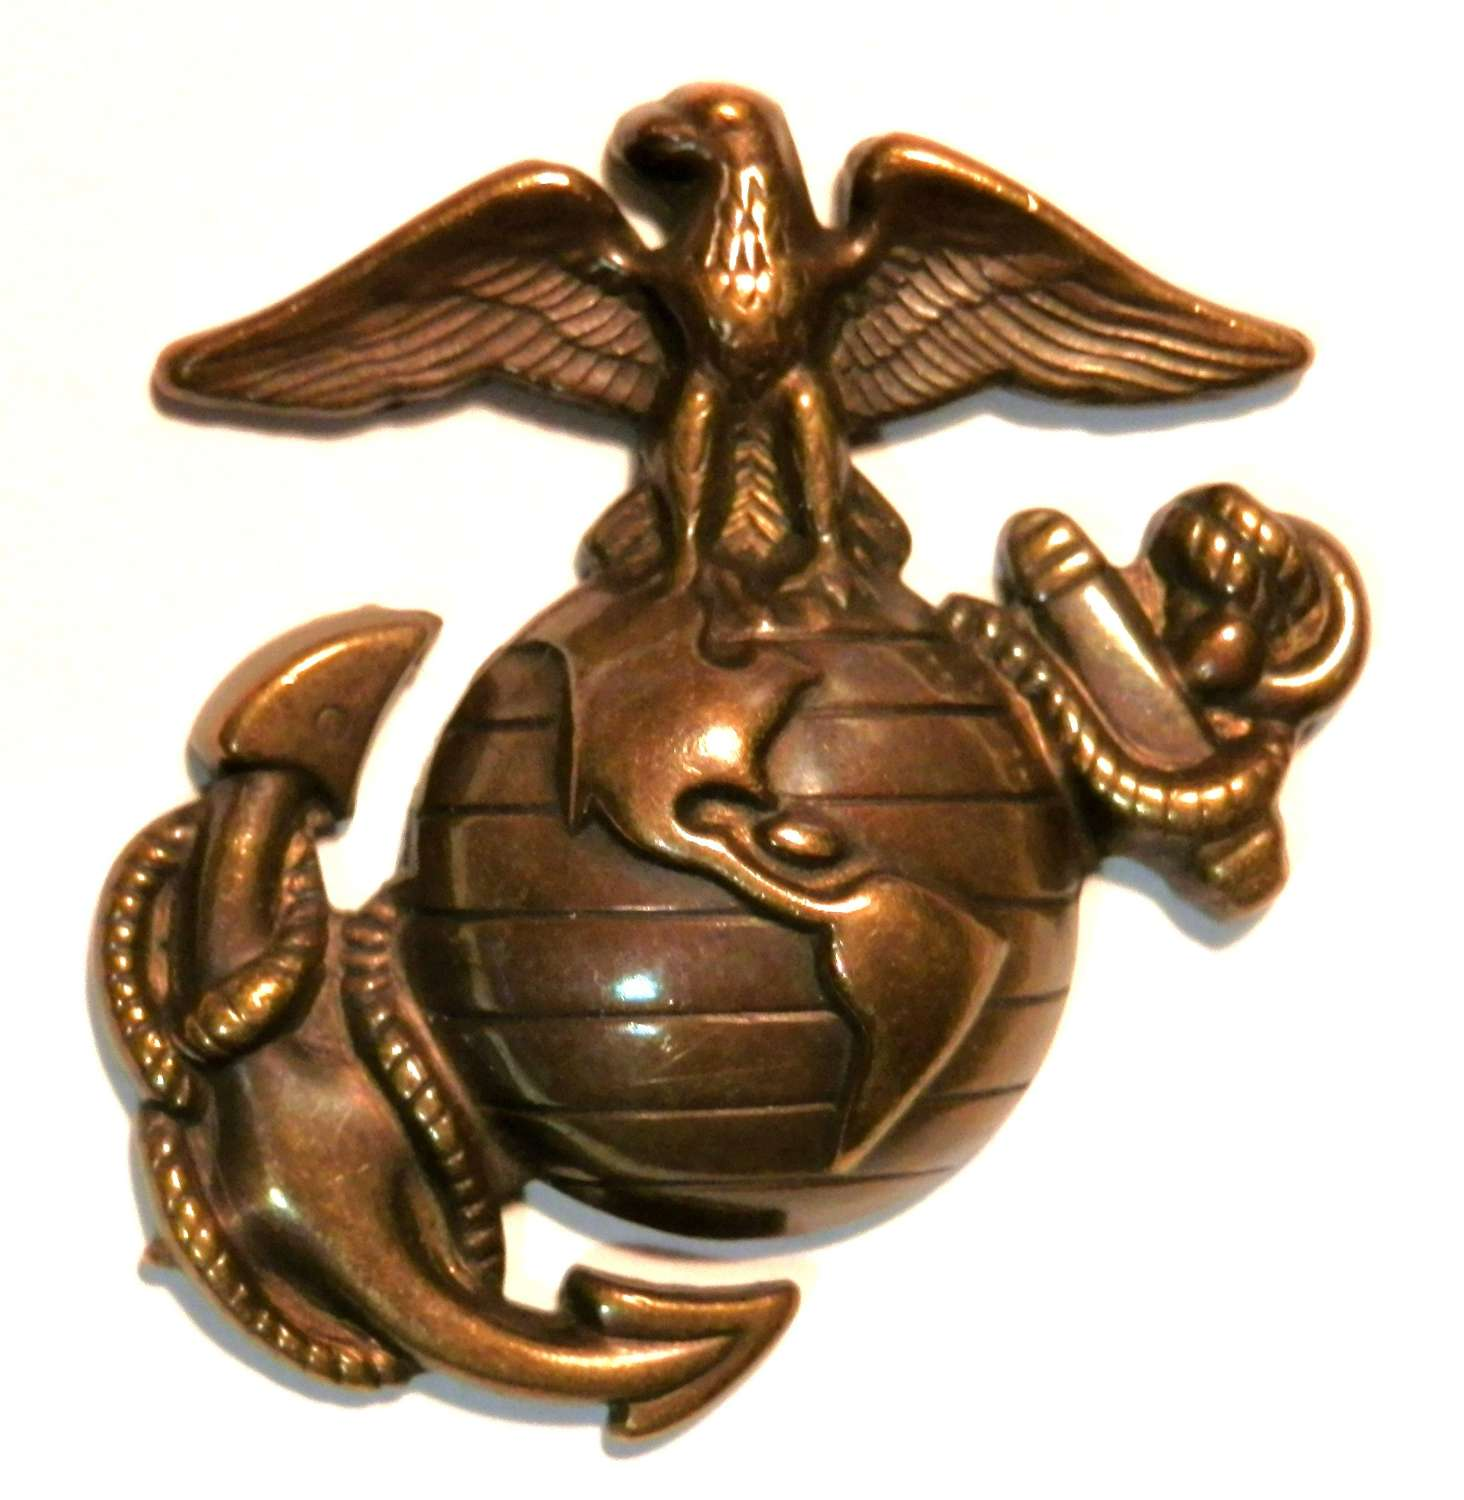 United States Marine Corp Cap Badge.